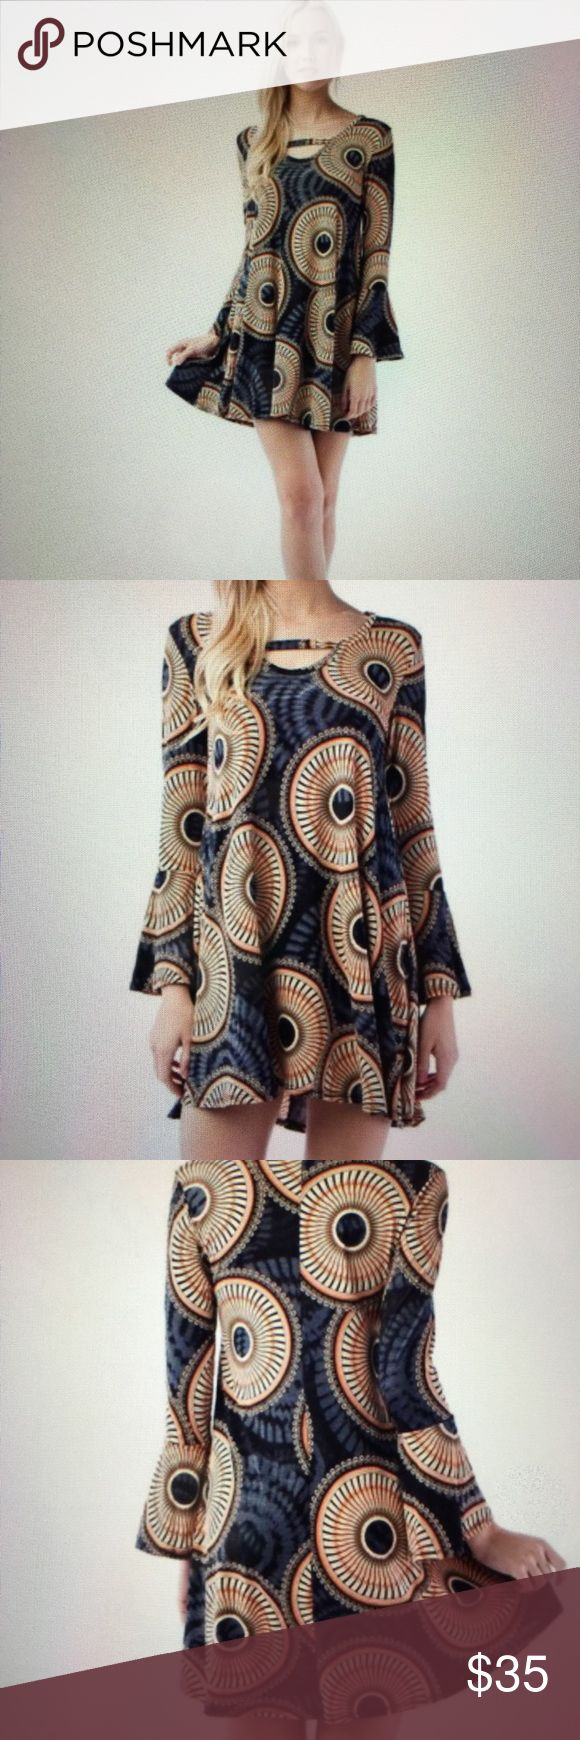 Bohemian chic dress S M L COMING SOON A fun fresh bohemian tunic dress in charcoal rust. Love it  92% polyester 8% Spandex. Made in the USA  comes in S M and L 03052017105098 Dresses Mini